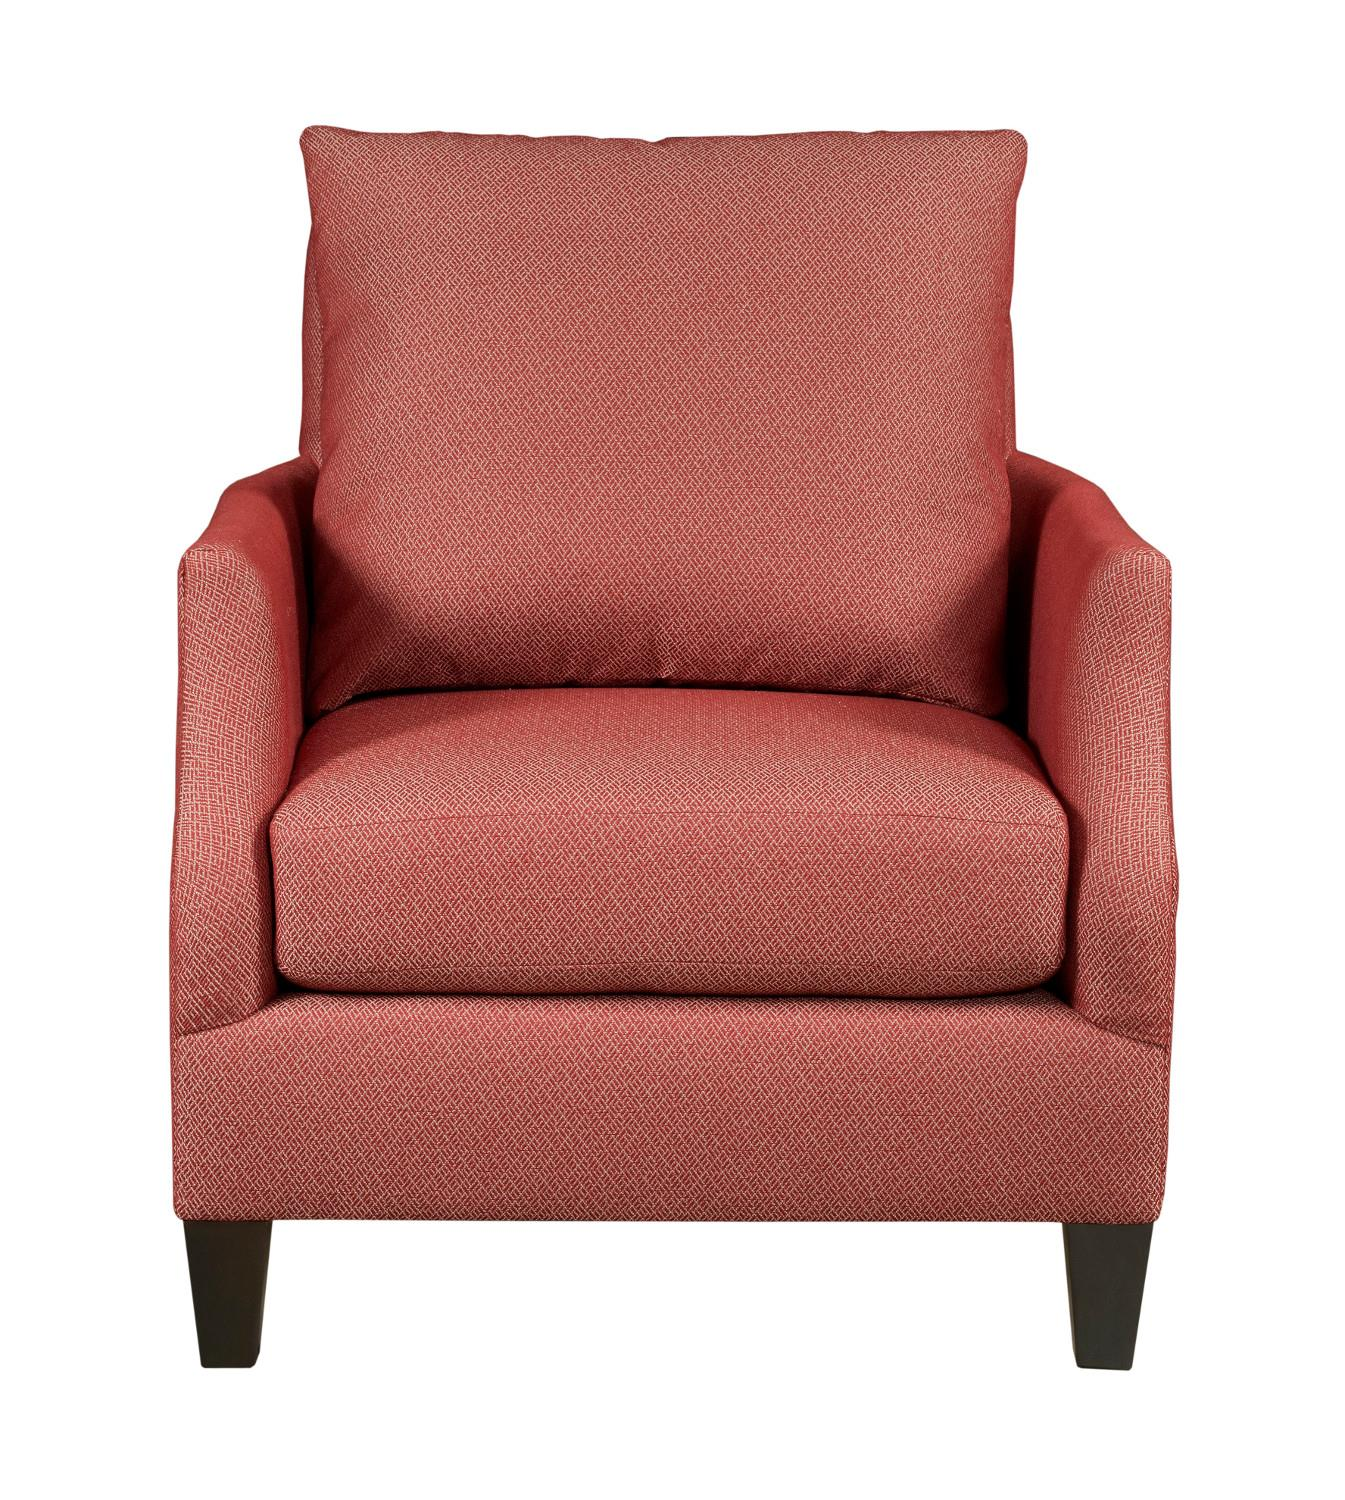 Modern Select Chair by Kincaid Furniture at Belfort Furniture